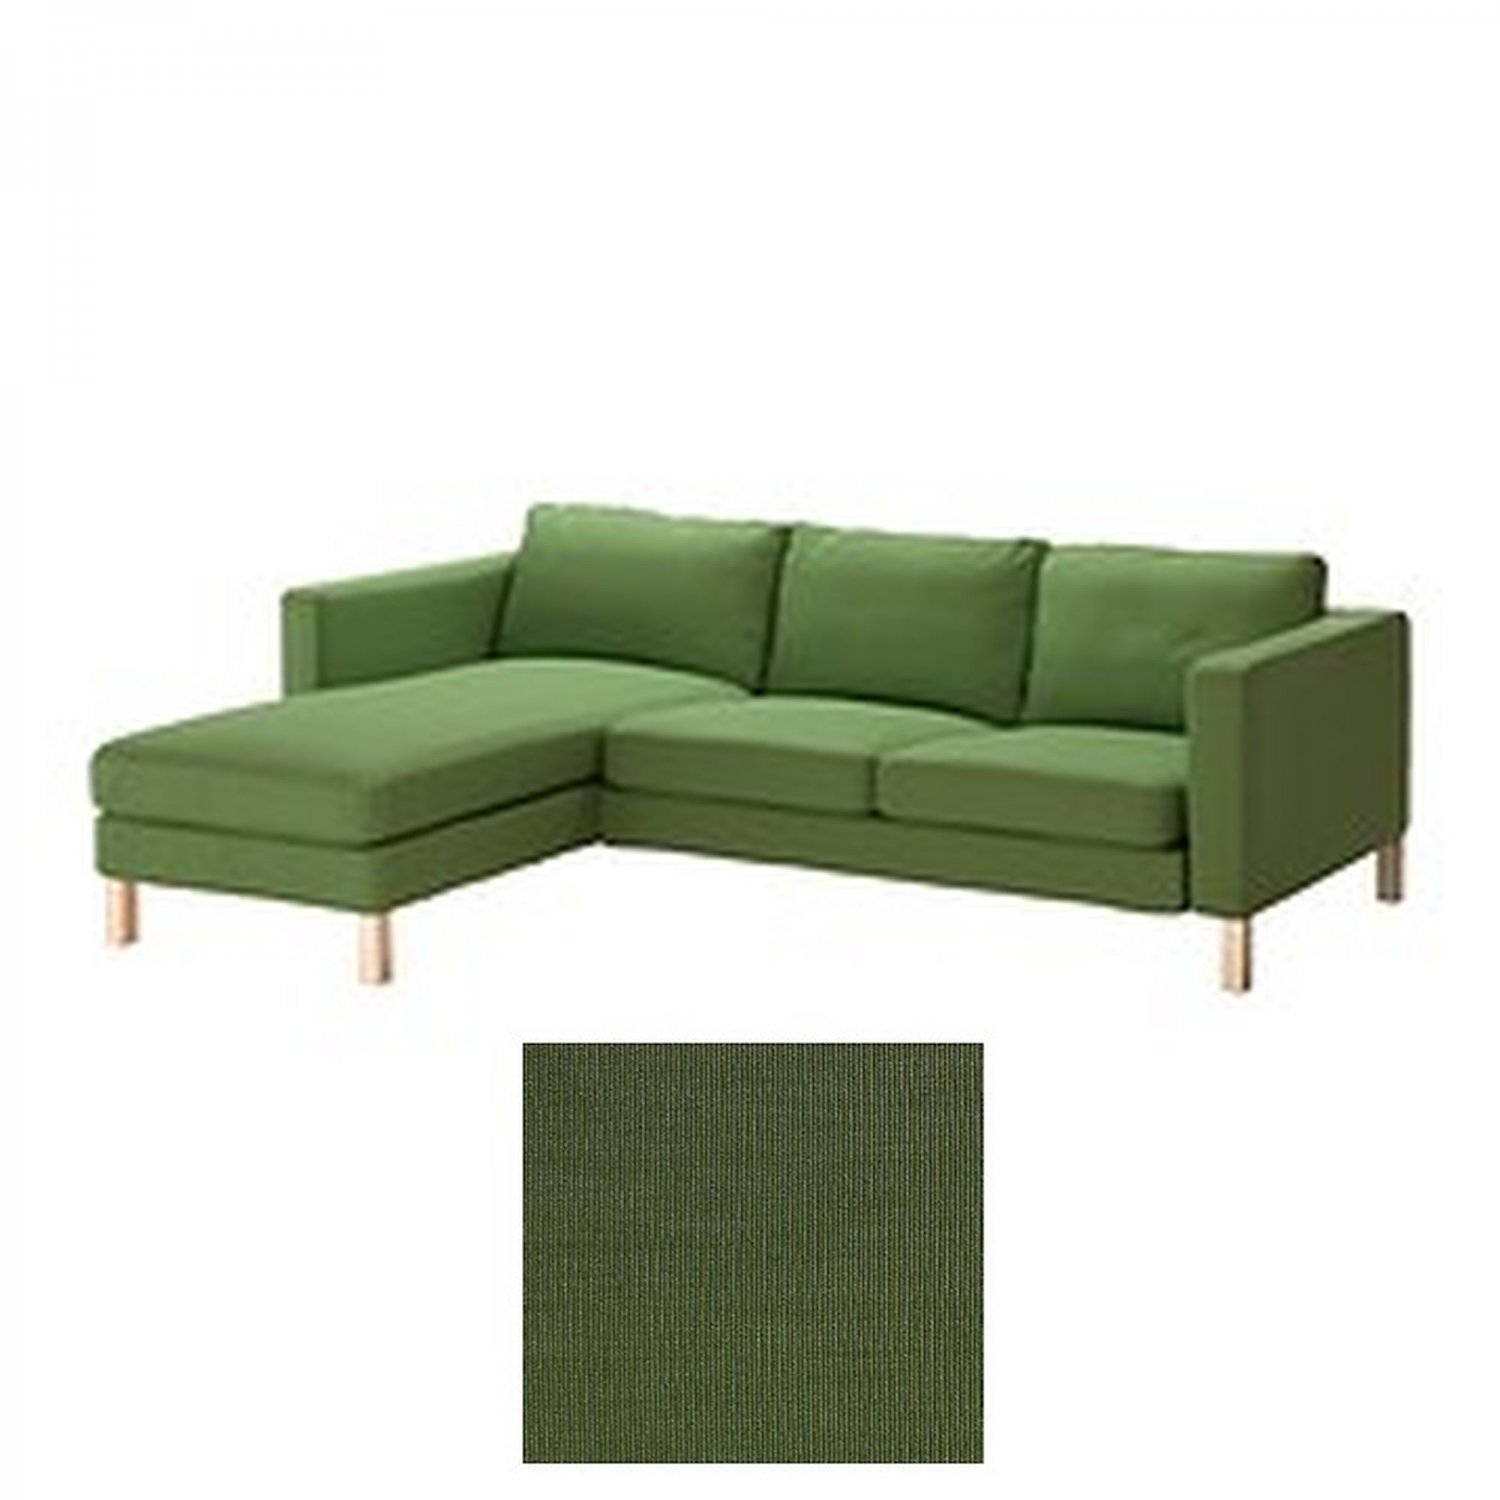 Ikea Karlstad 2 Seat Loveseat Sofa And Chaise Slipcover Cover Sivik Green Add On Last One: loveseat slipcover